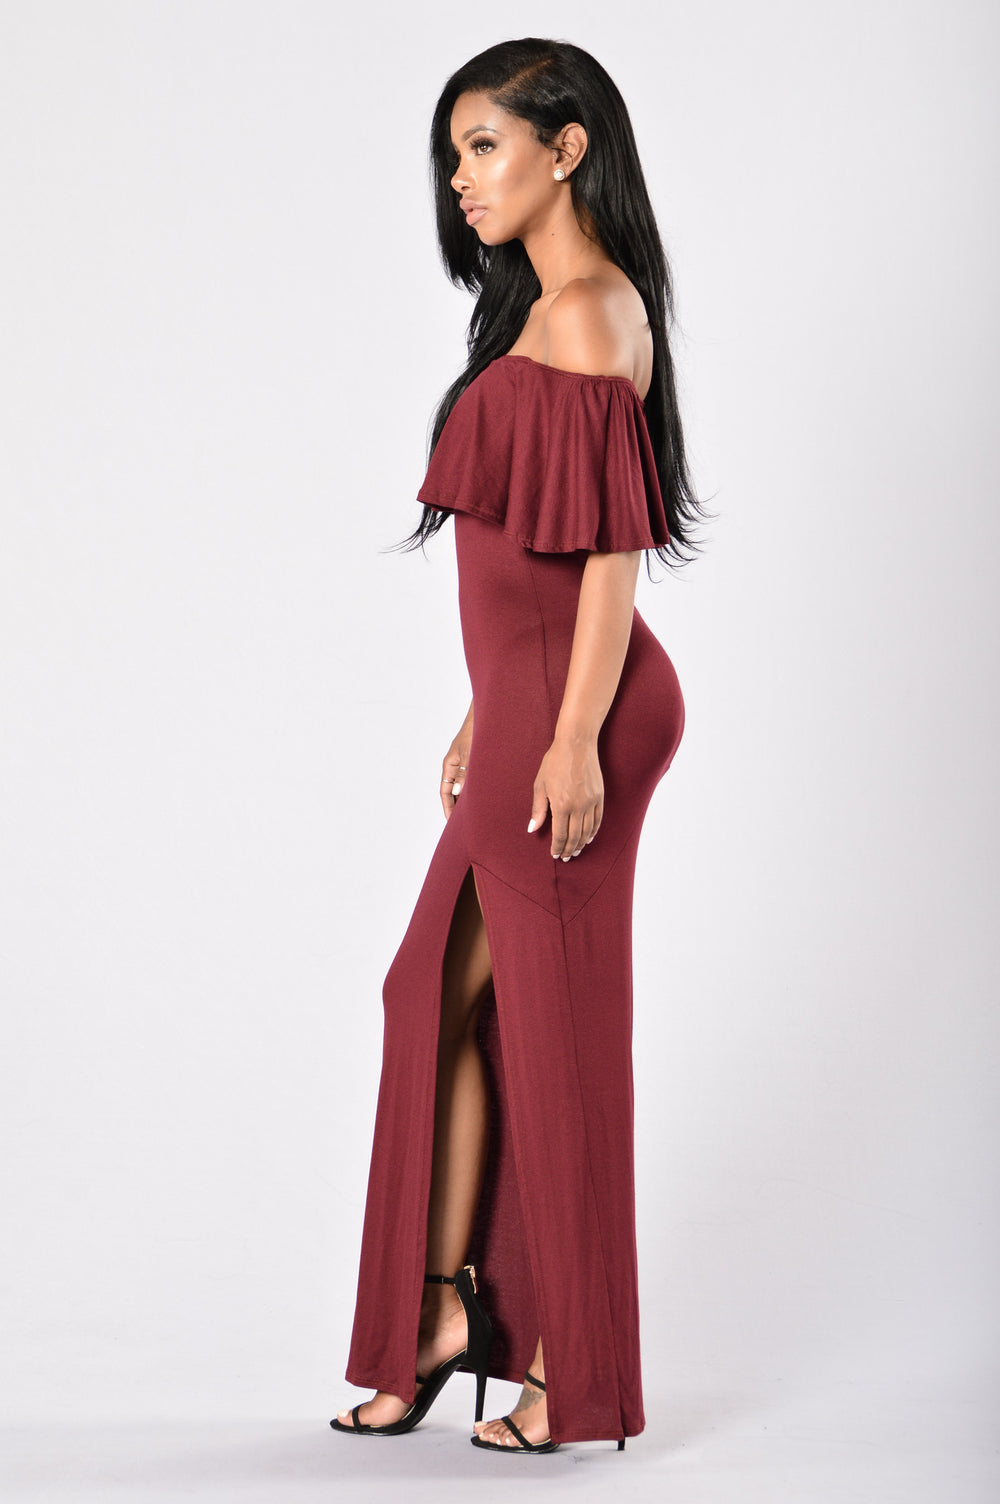 Senorita Dress - Burgundy